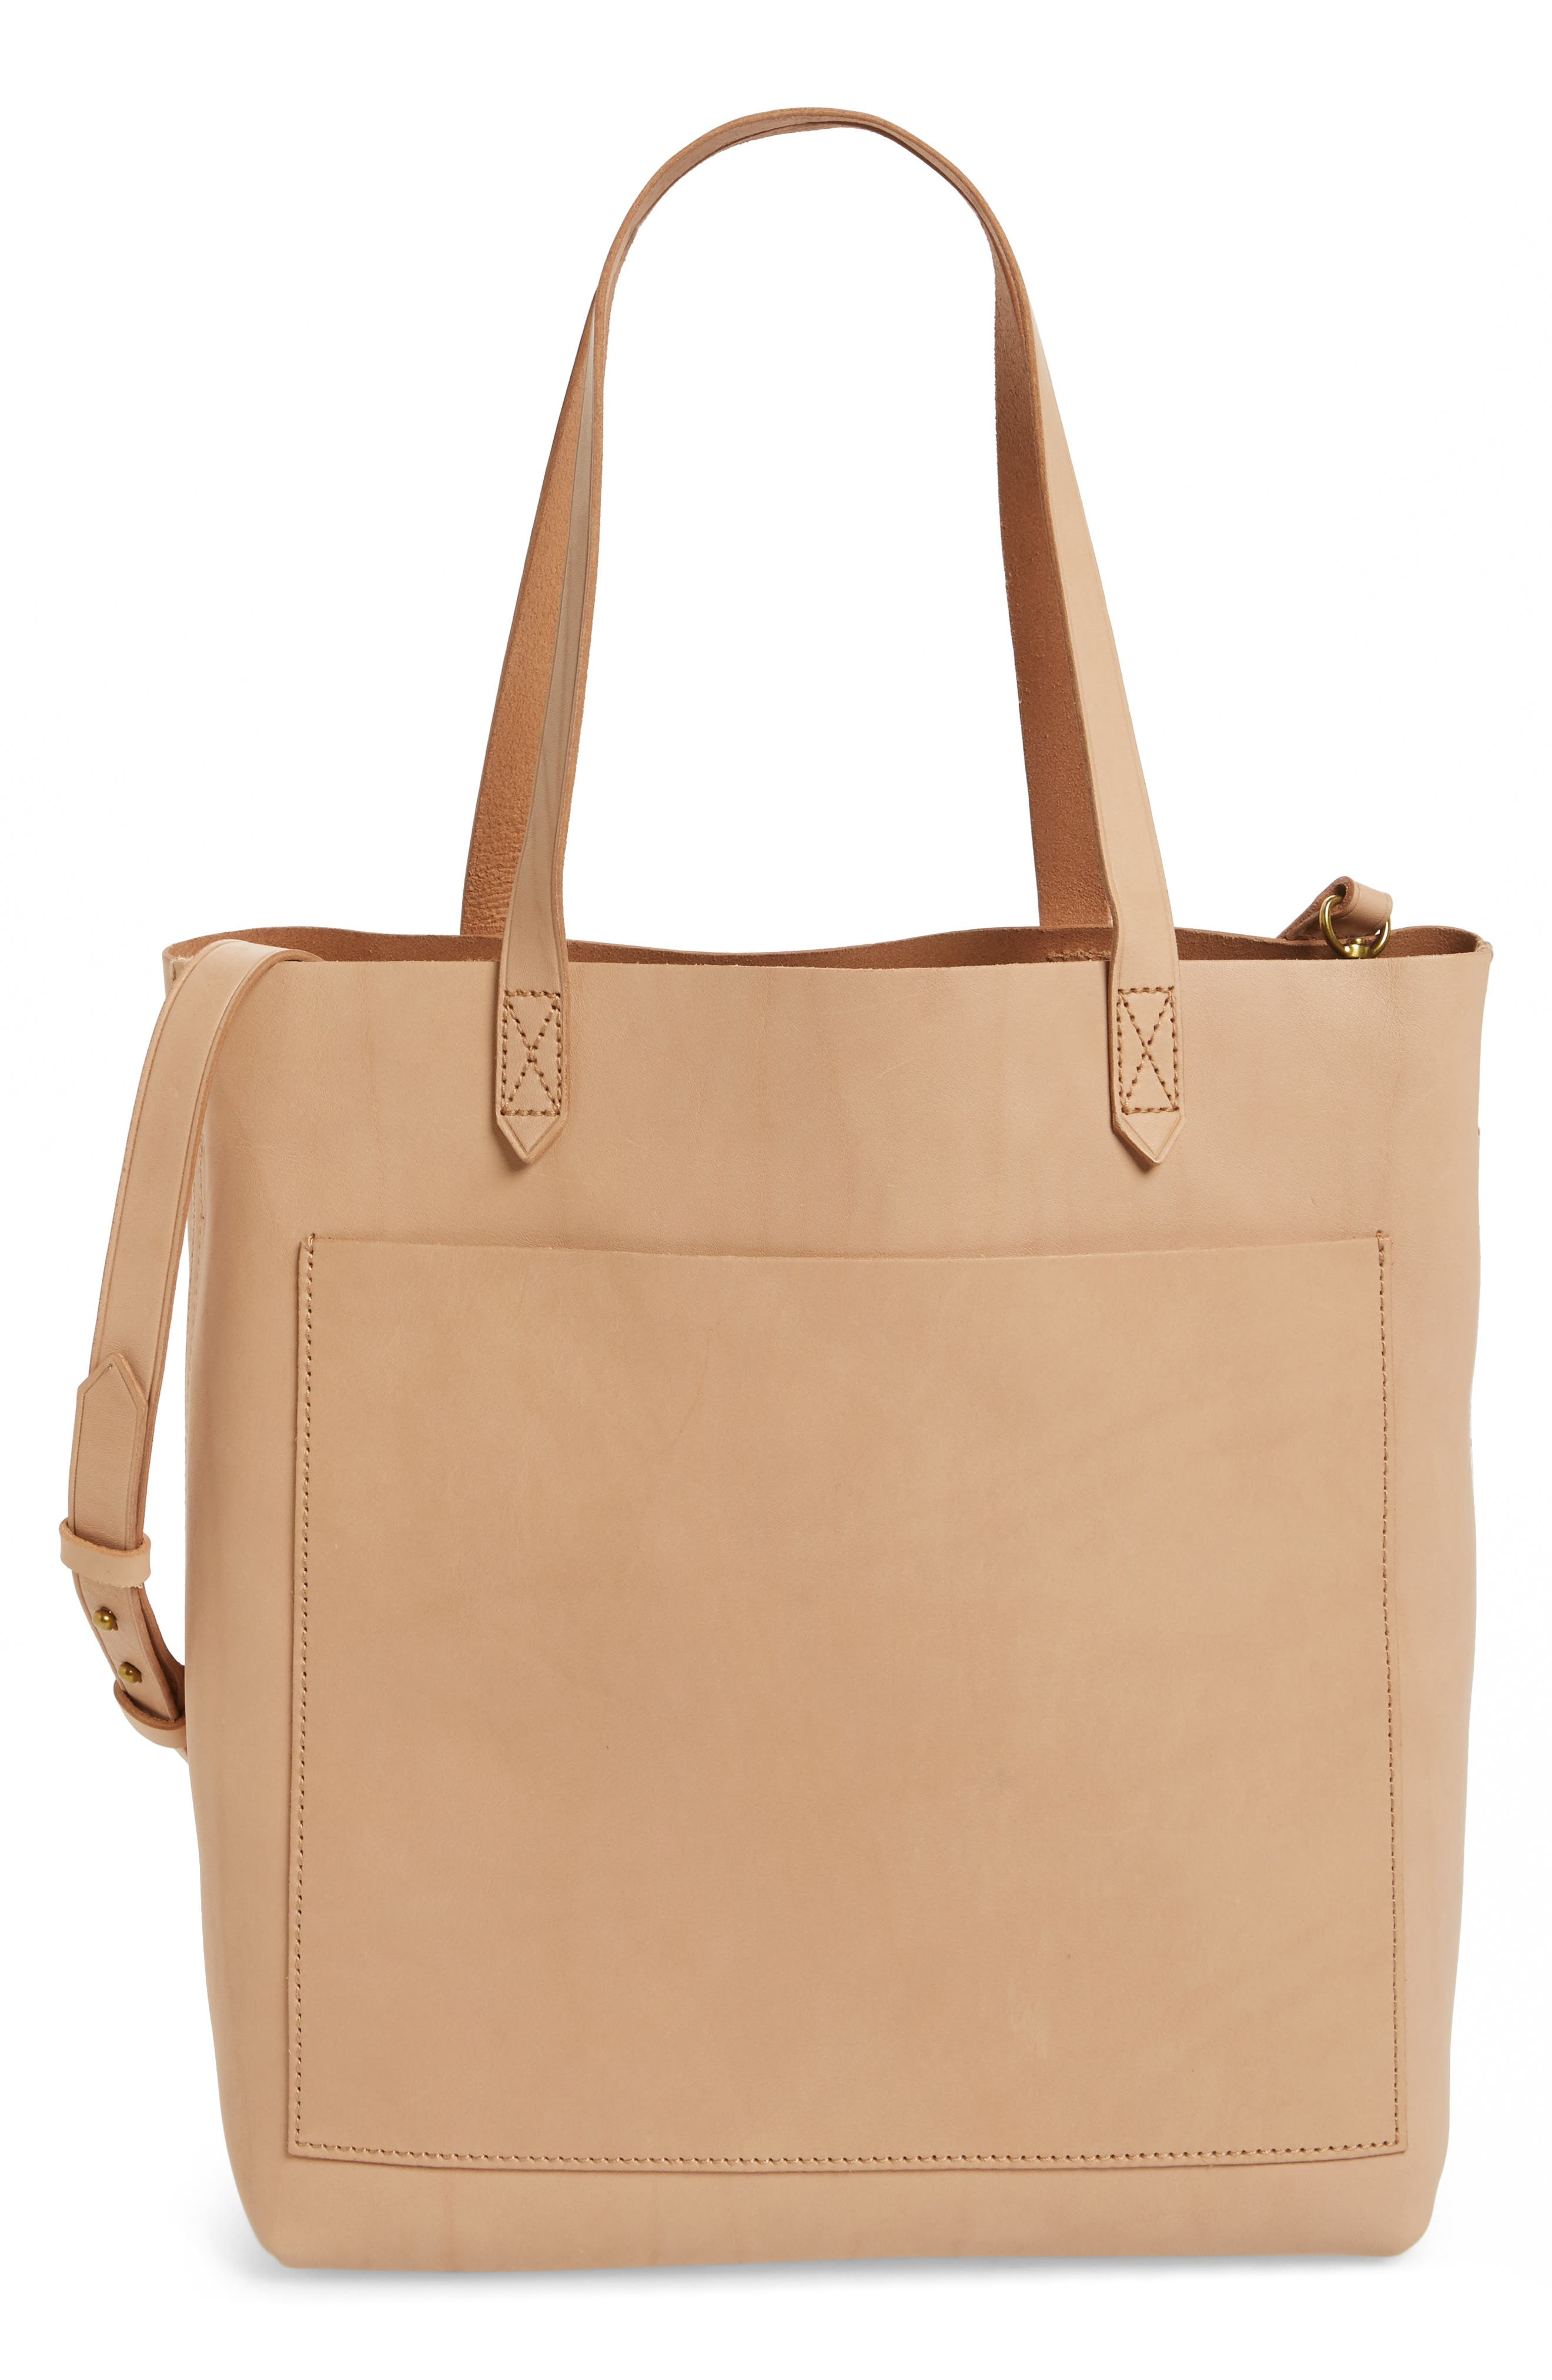 Brown Leather (Genuine) Tote Bags for Women: Canvas, Leather ...